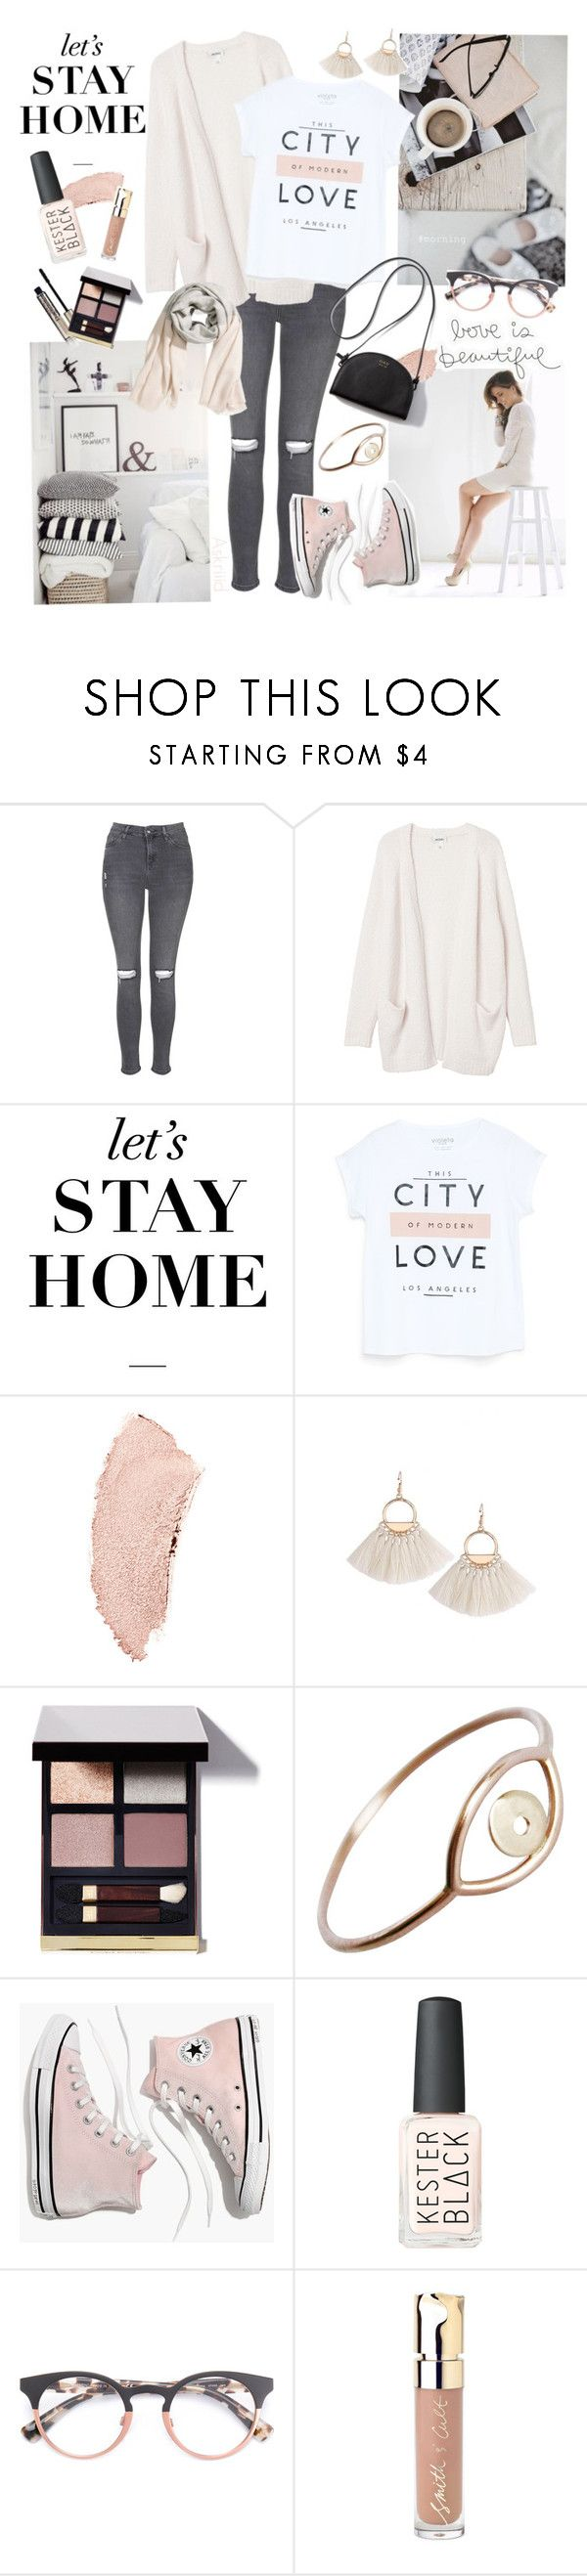 """""""Let's stay at home"""" by askriiid ❤ liked on Polyvore featuring Topshop, Monki, WALL, Zooey, MANGO, Chanel, Tom Ford, Stefanie Sheehan Jewelry, Madewell and Kester Black"""